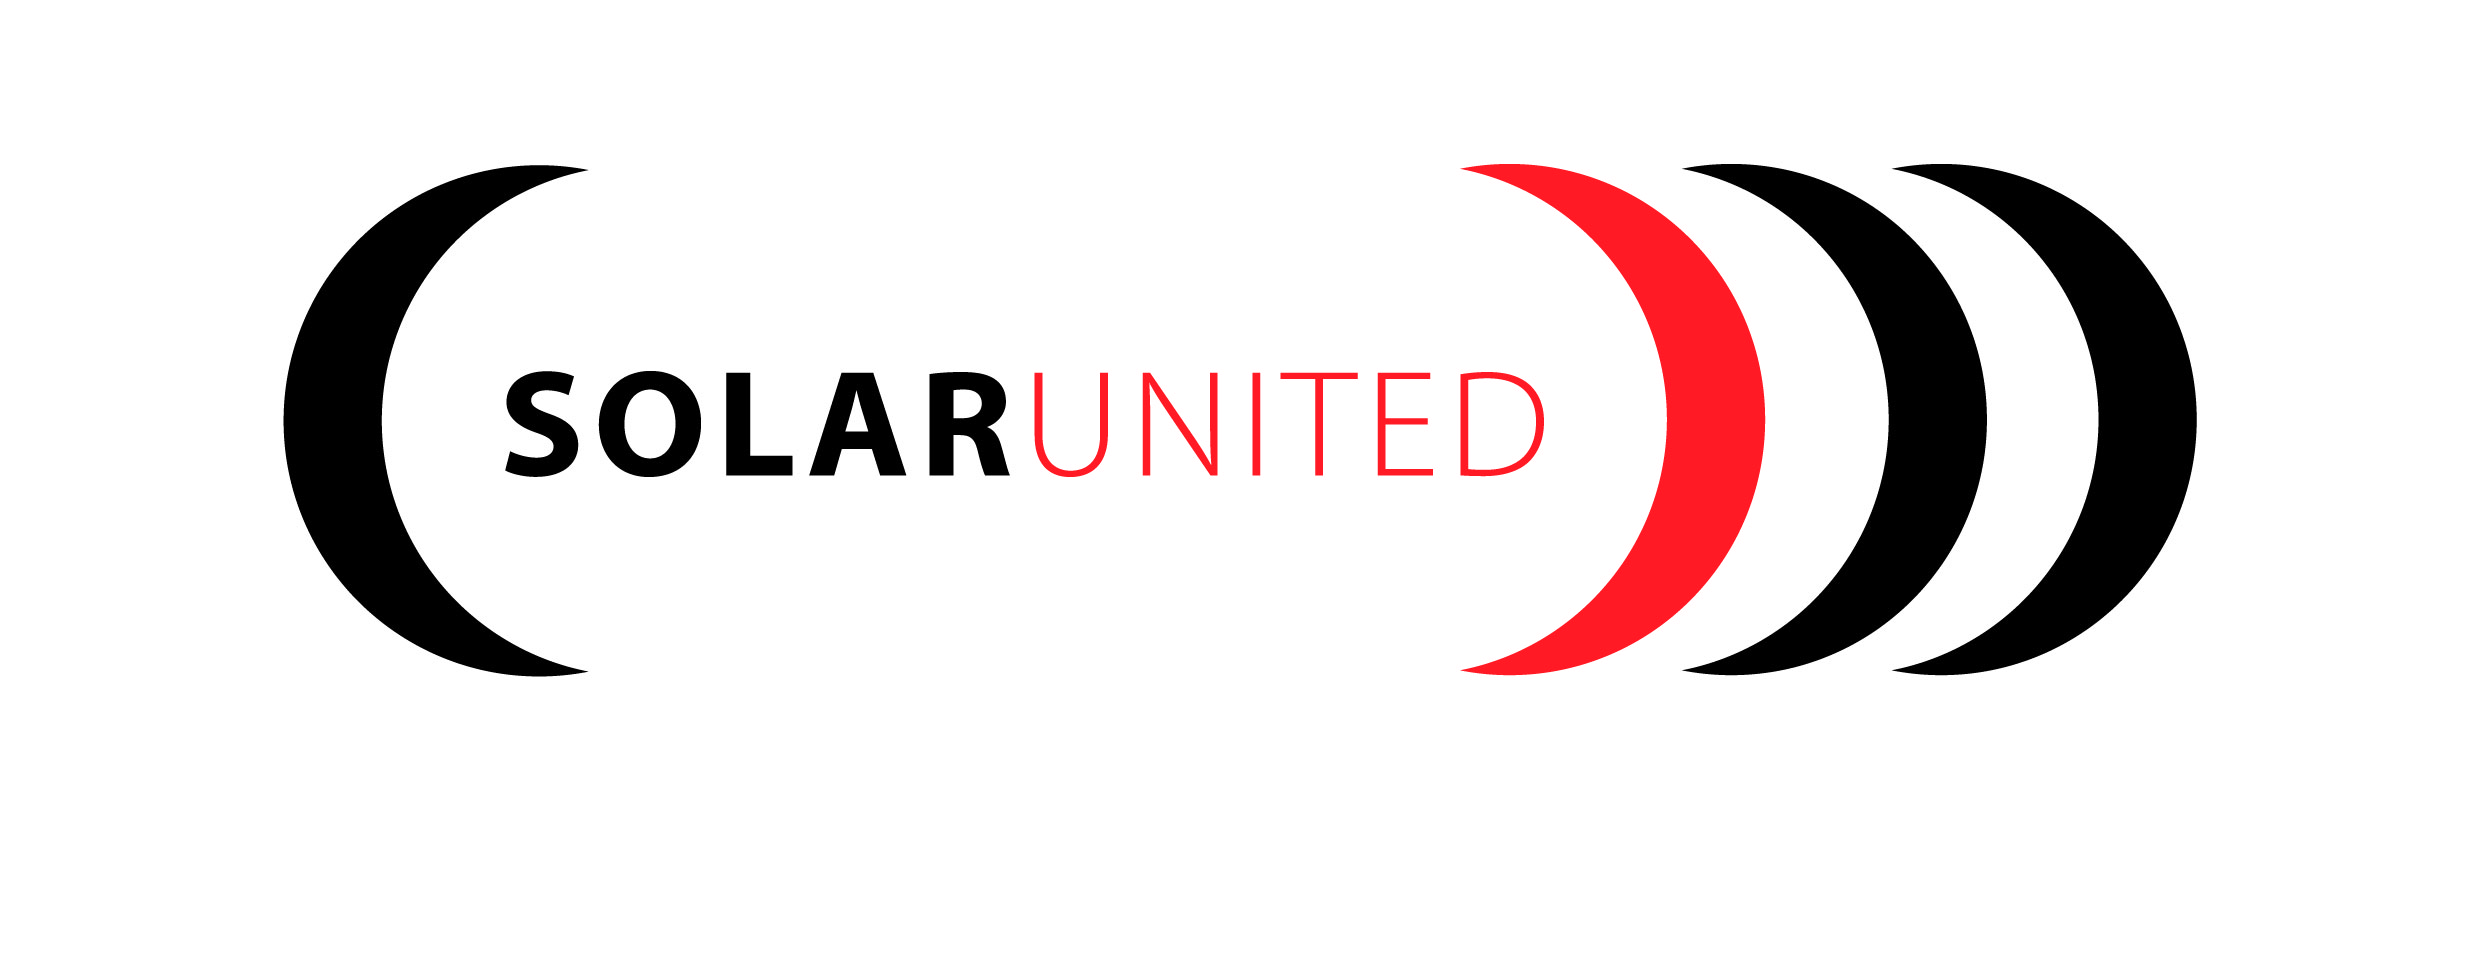 SolarUnited_final_Without_Claim